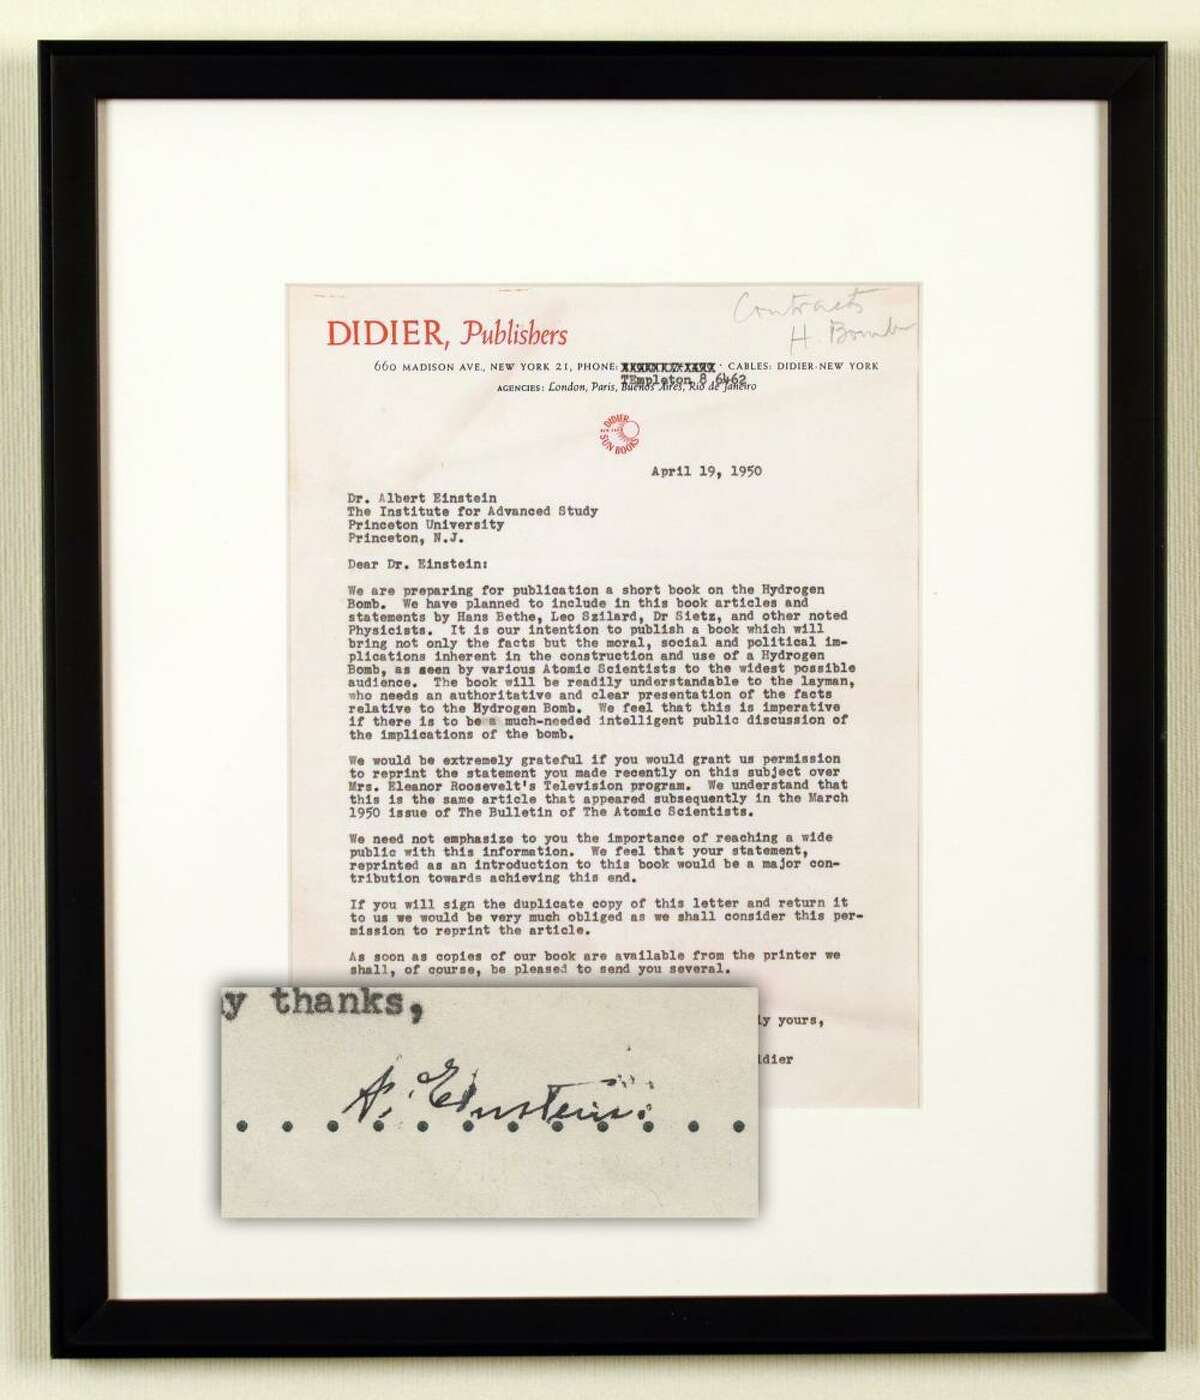 A letter typed and signed by Albert Einstein regarding the development and use of the hydrogen bomb.